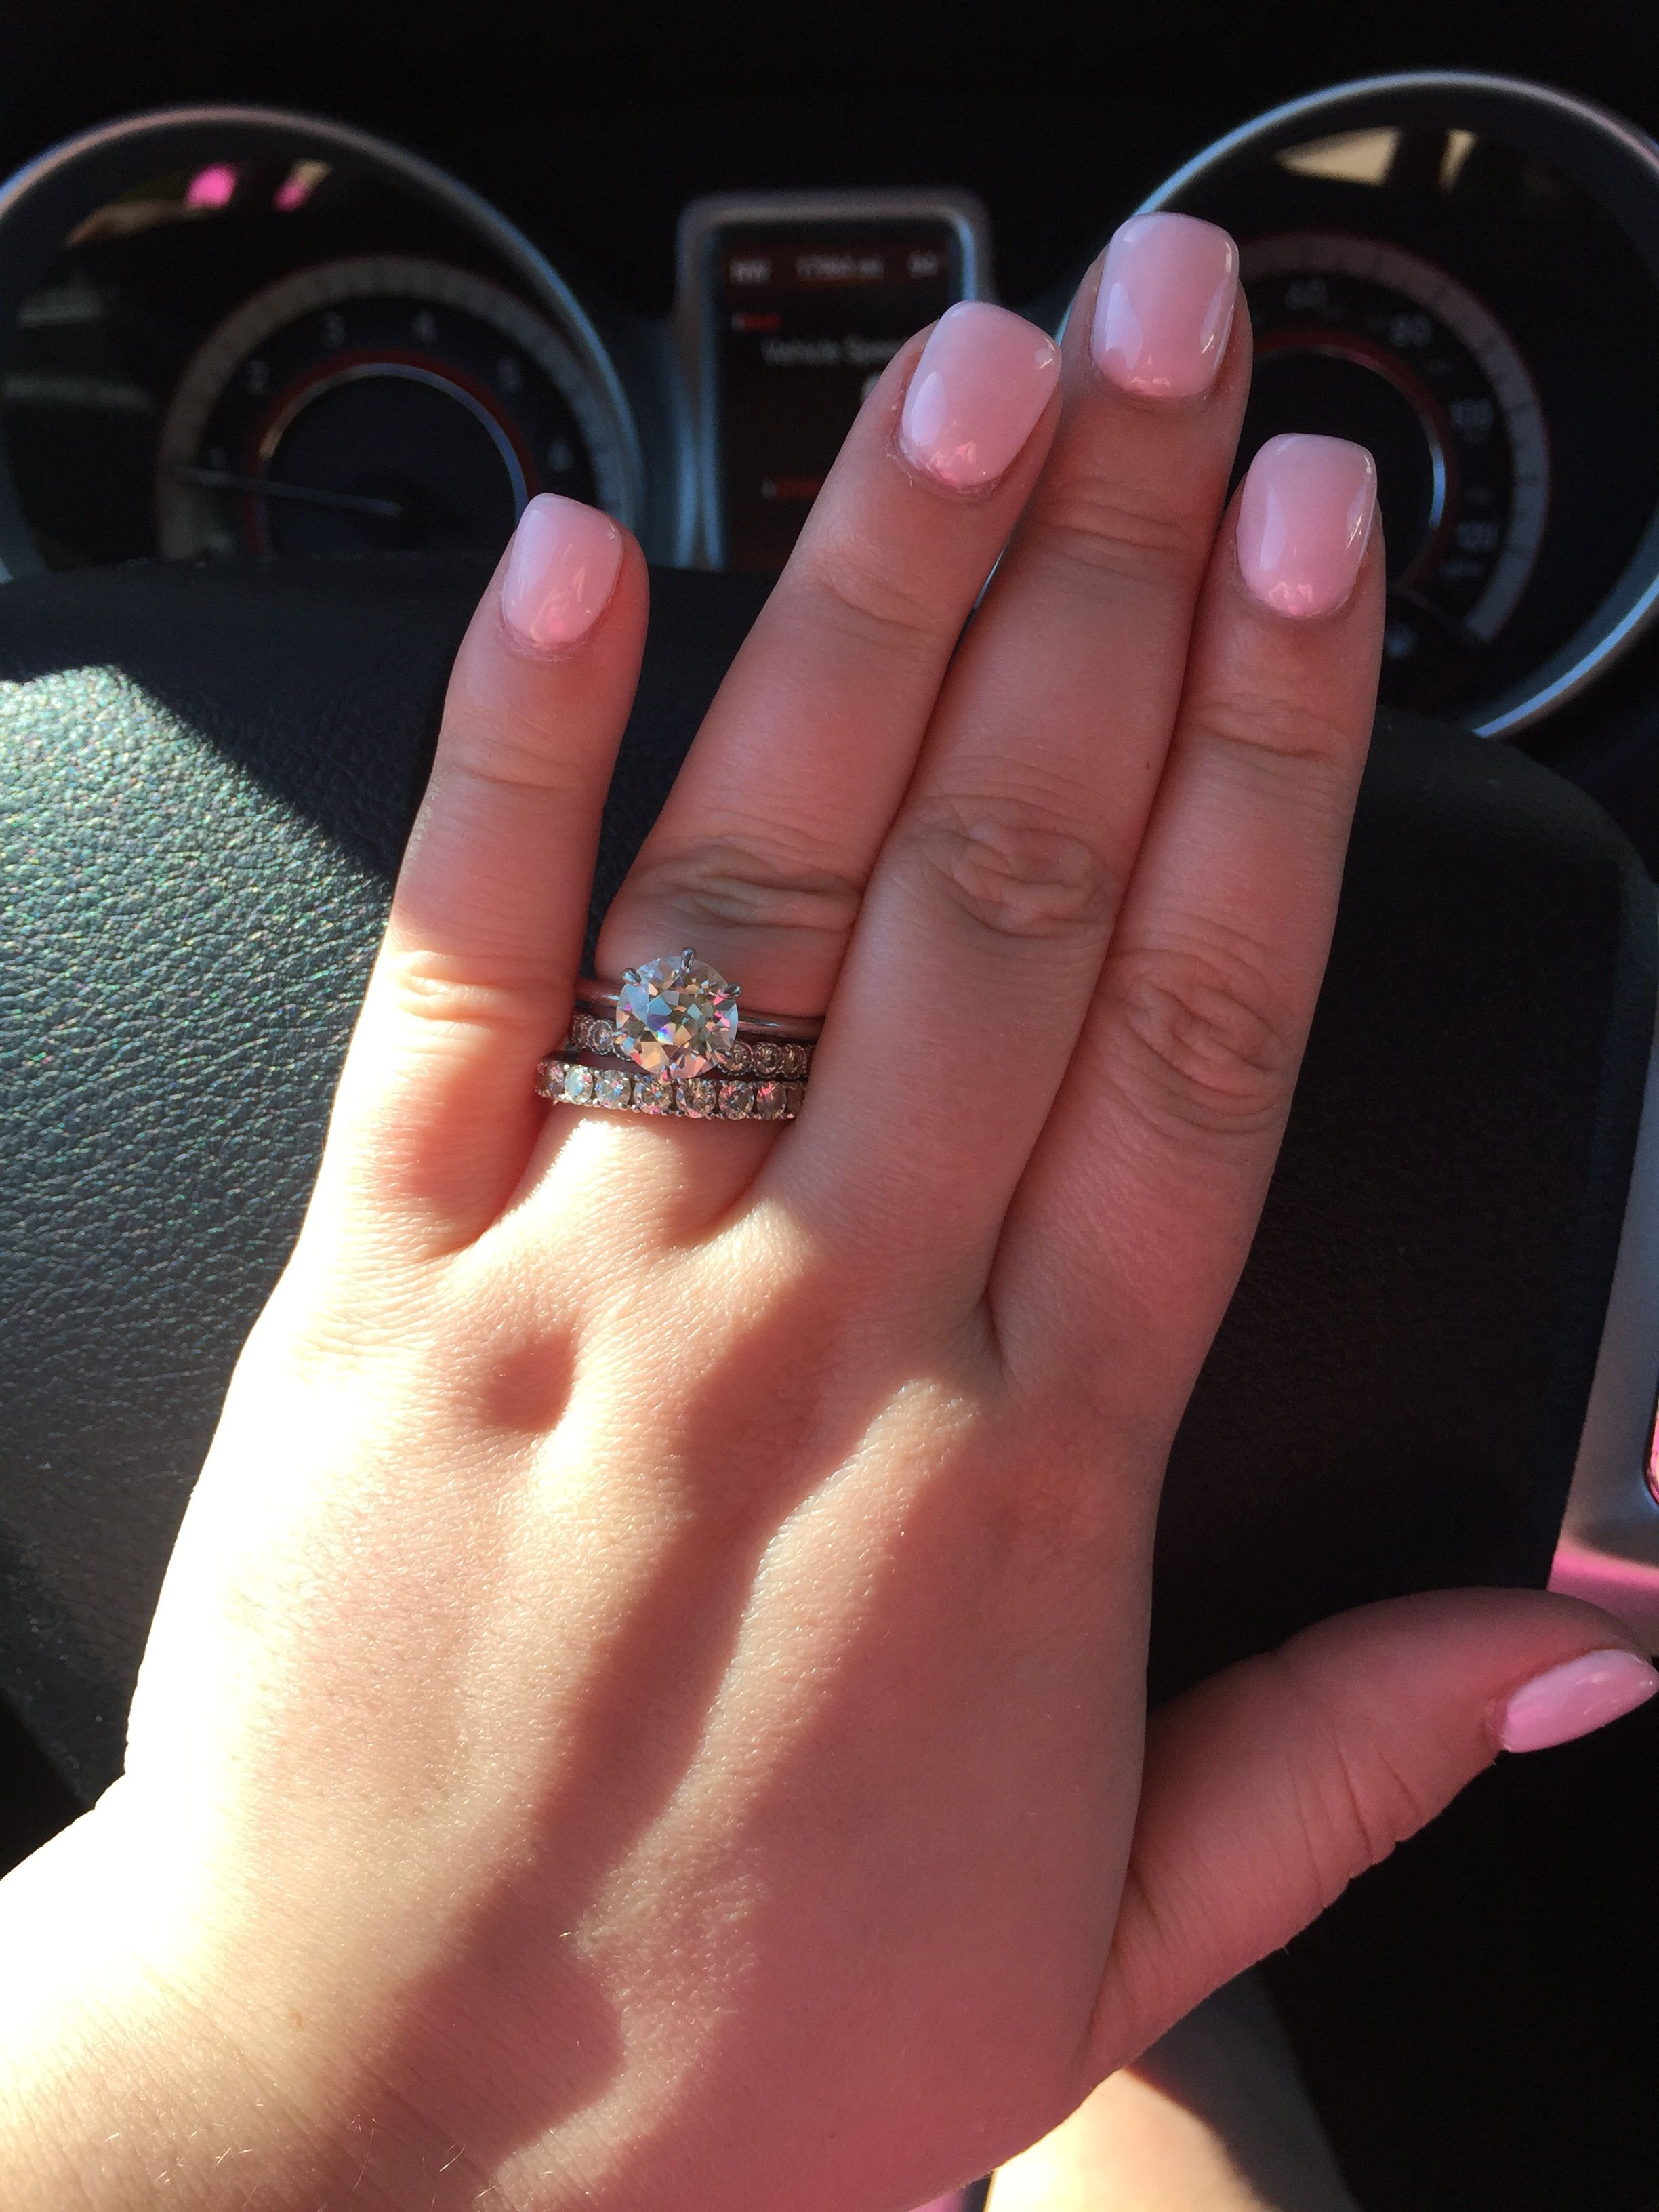 Carat Size For Size 7 Finger Weddingbee